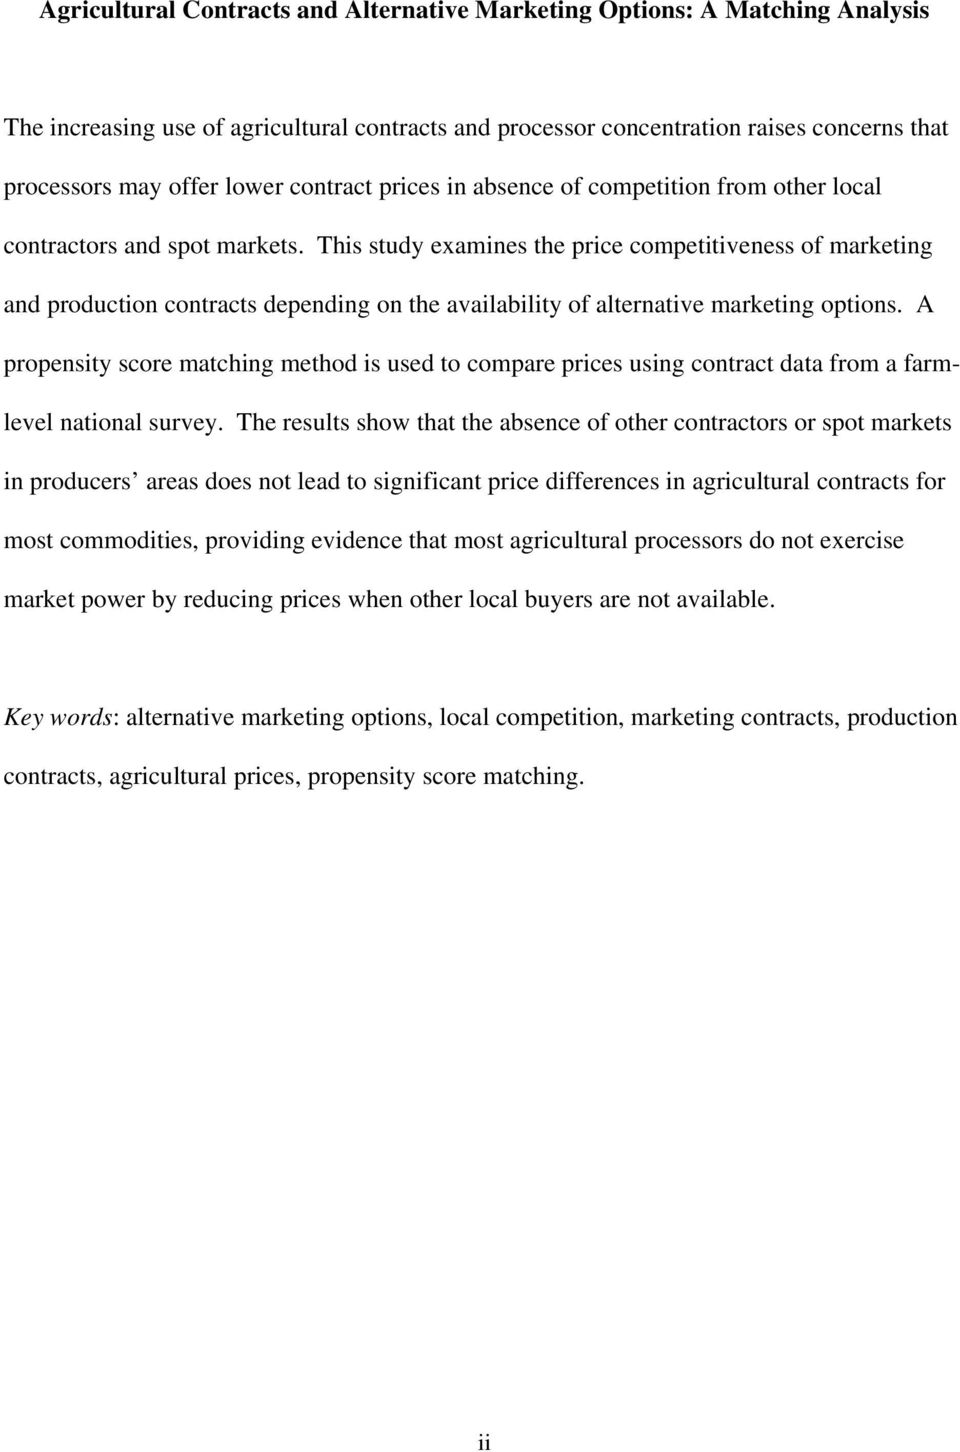 This study examines the price competitiveness of marketing and production contracts depending on the availability of alternative marketing options.